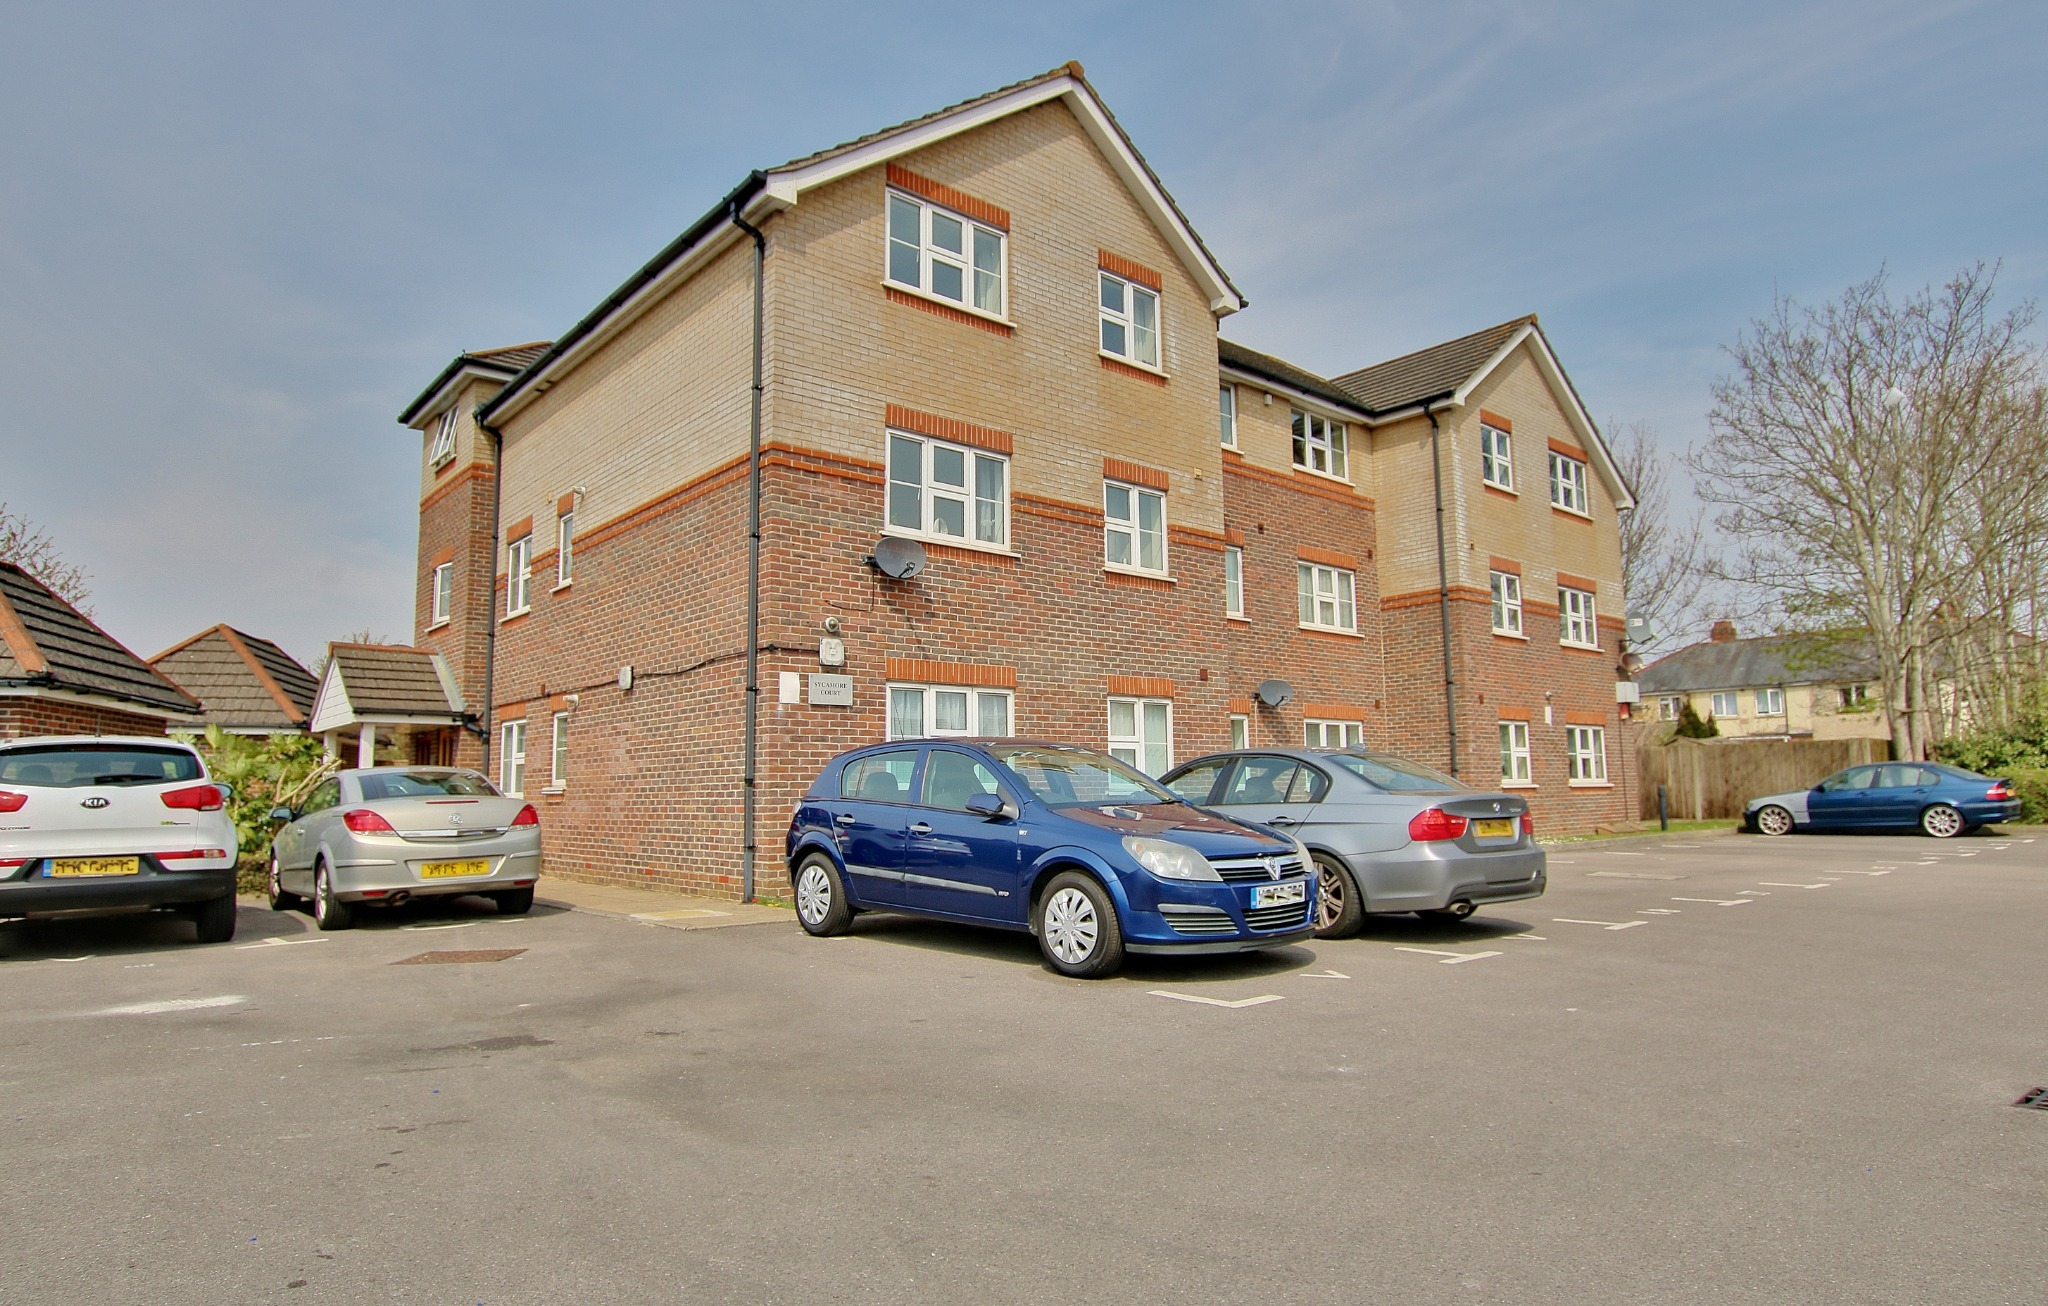 Sycamore Court, Jessamine Road, Southampton